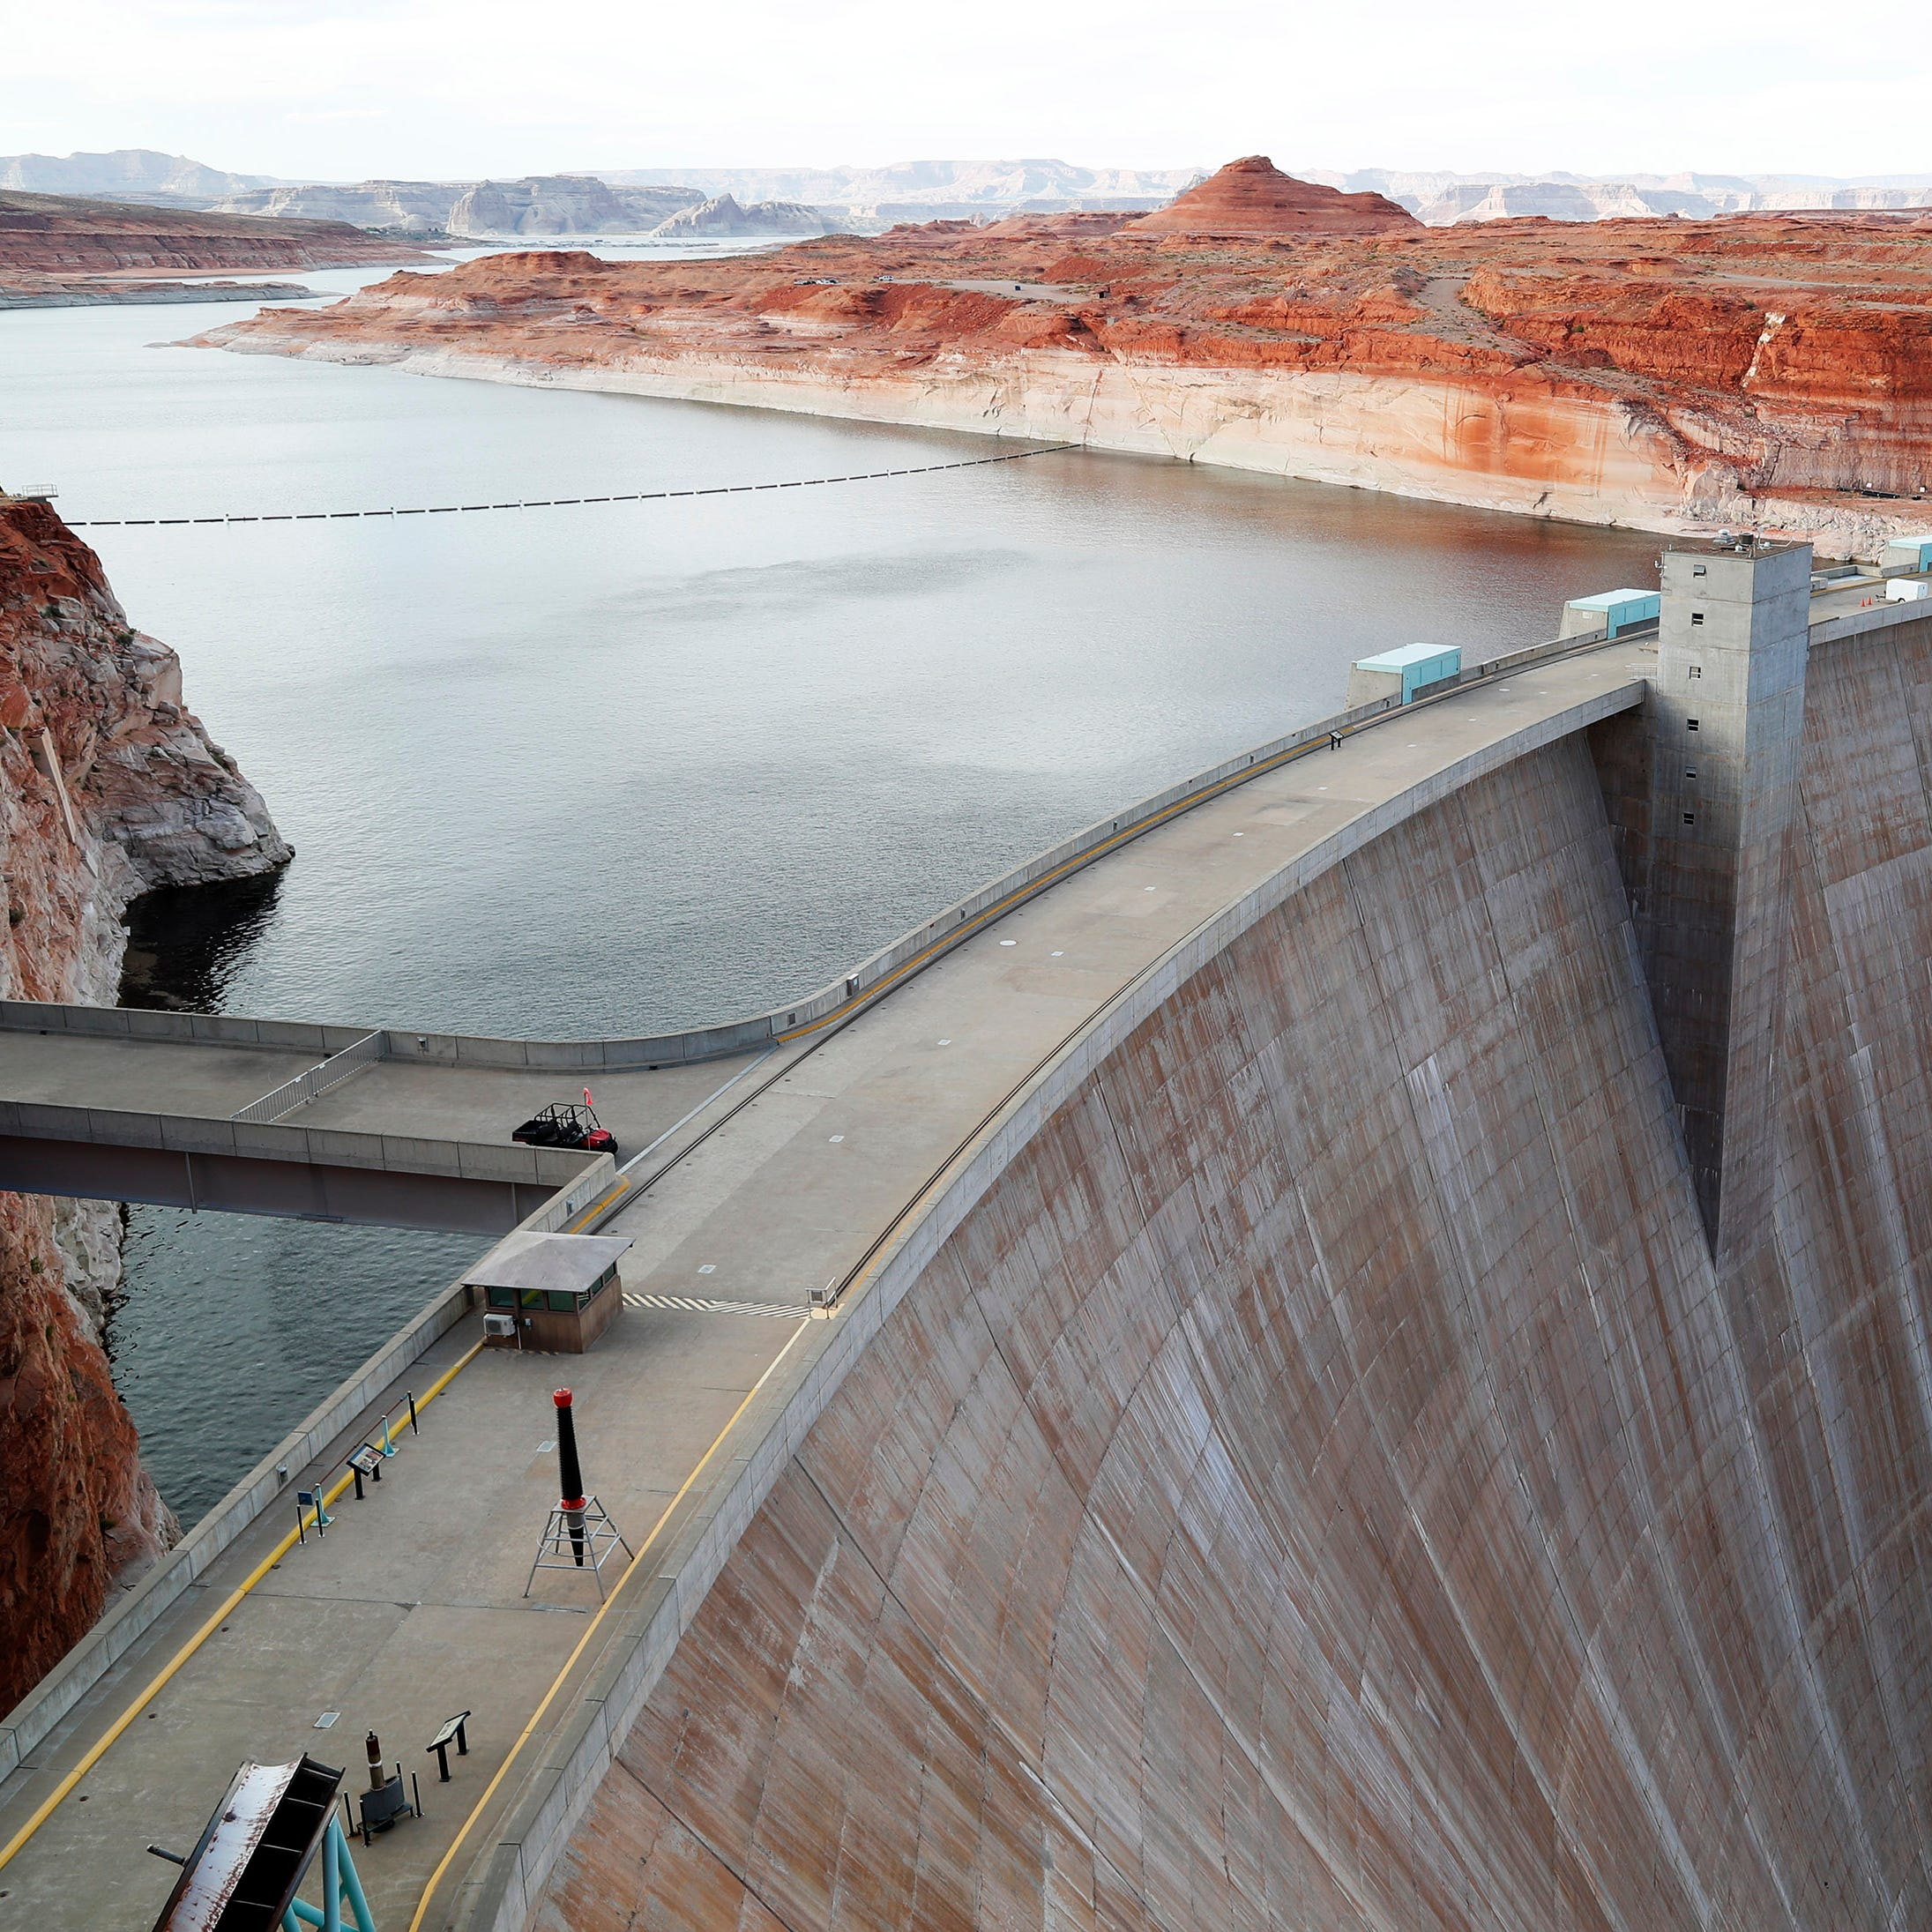 Why the next few weeks could make or break Arizona's water future